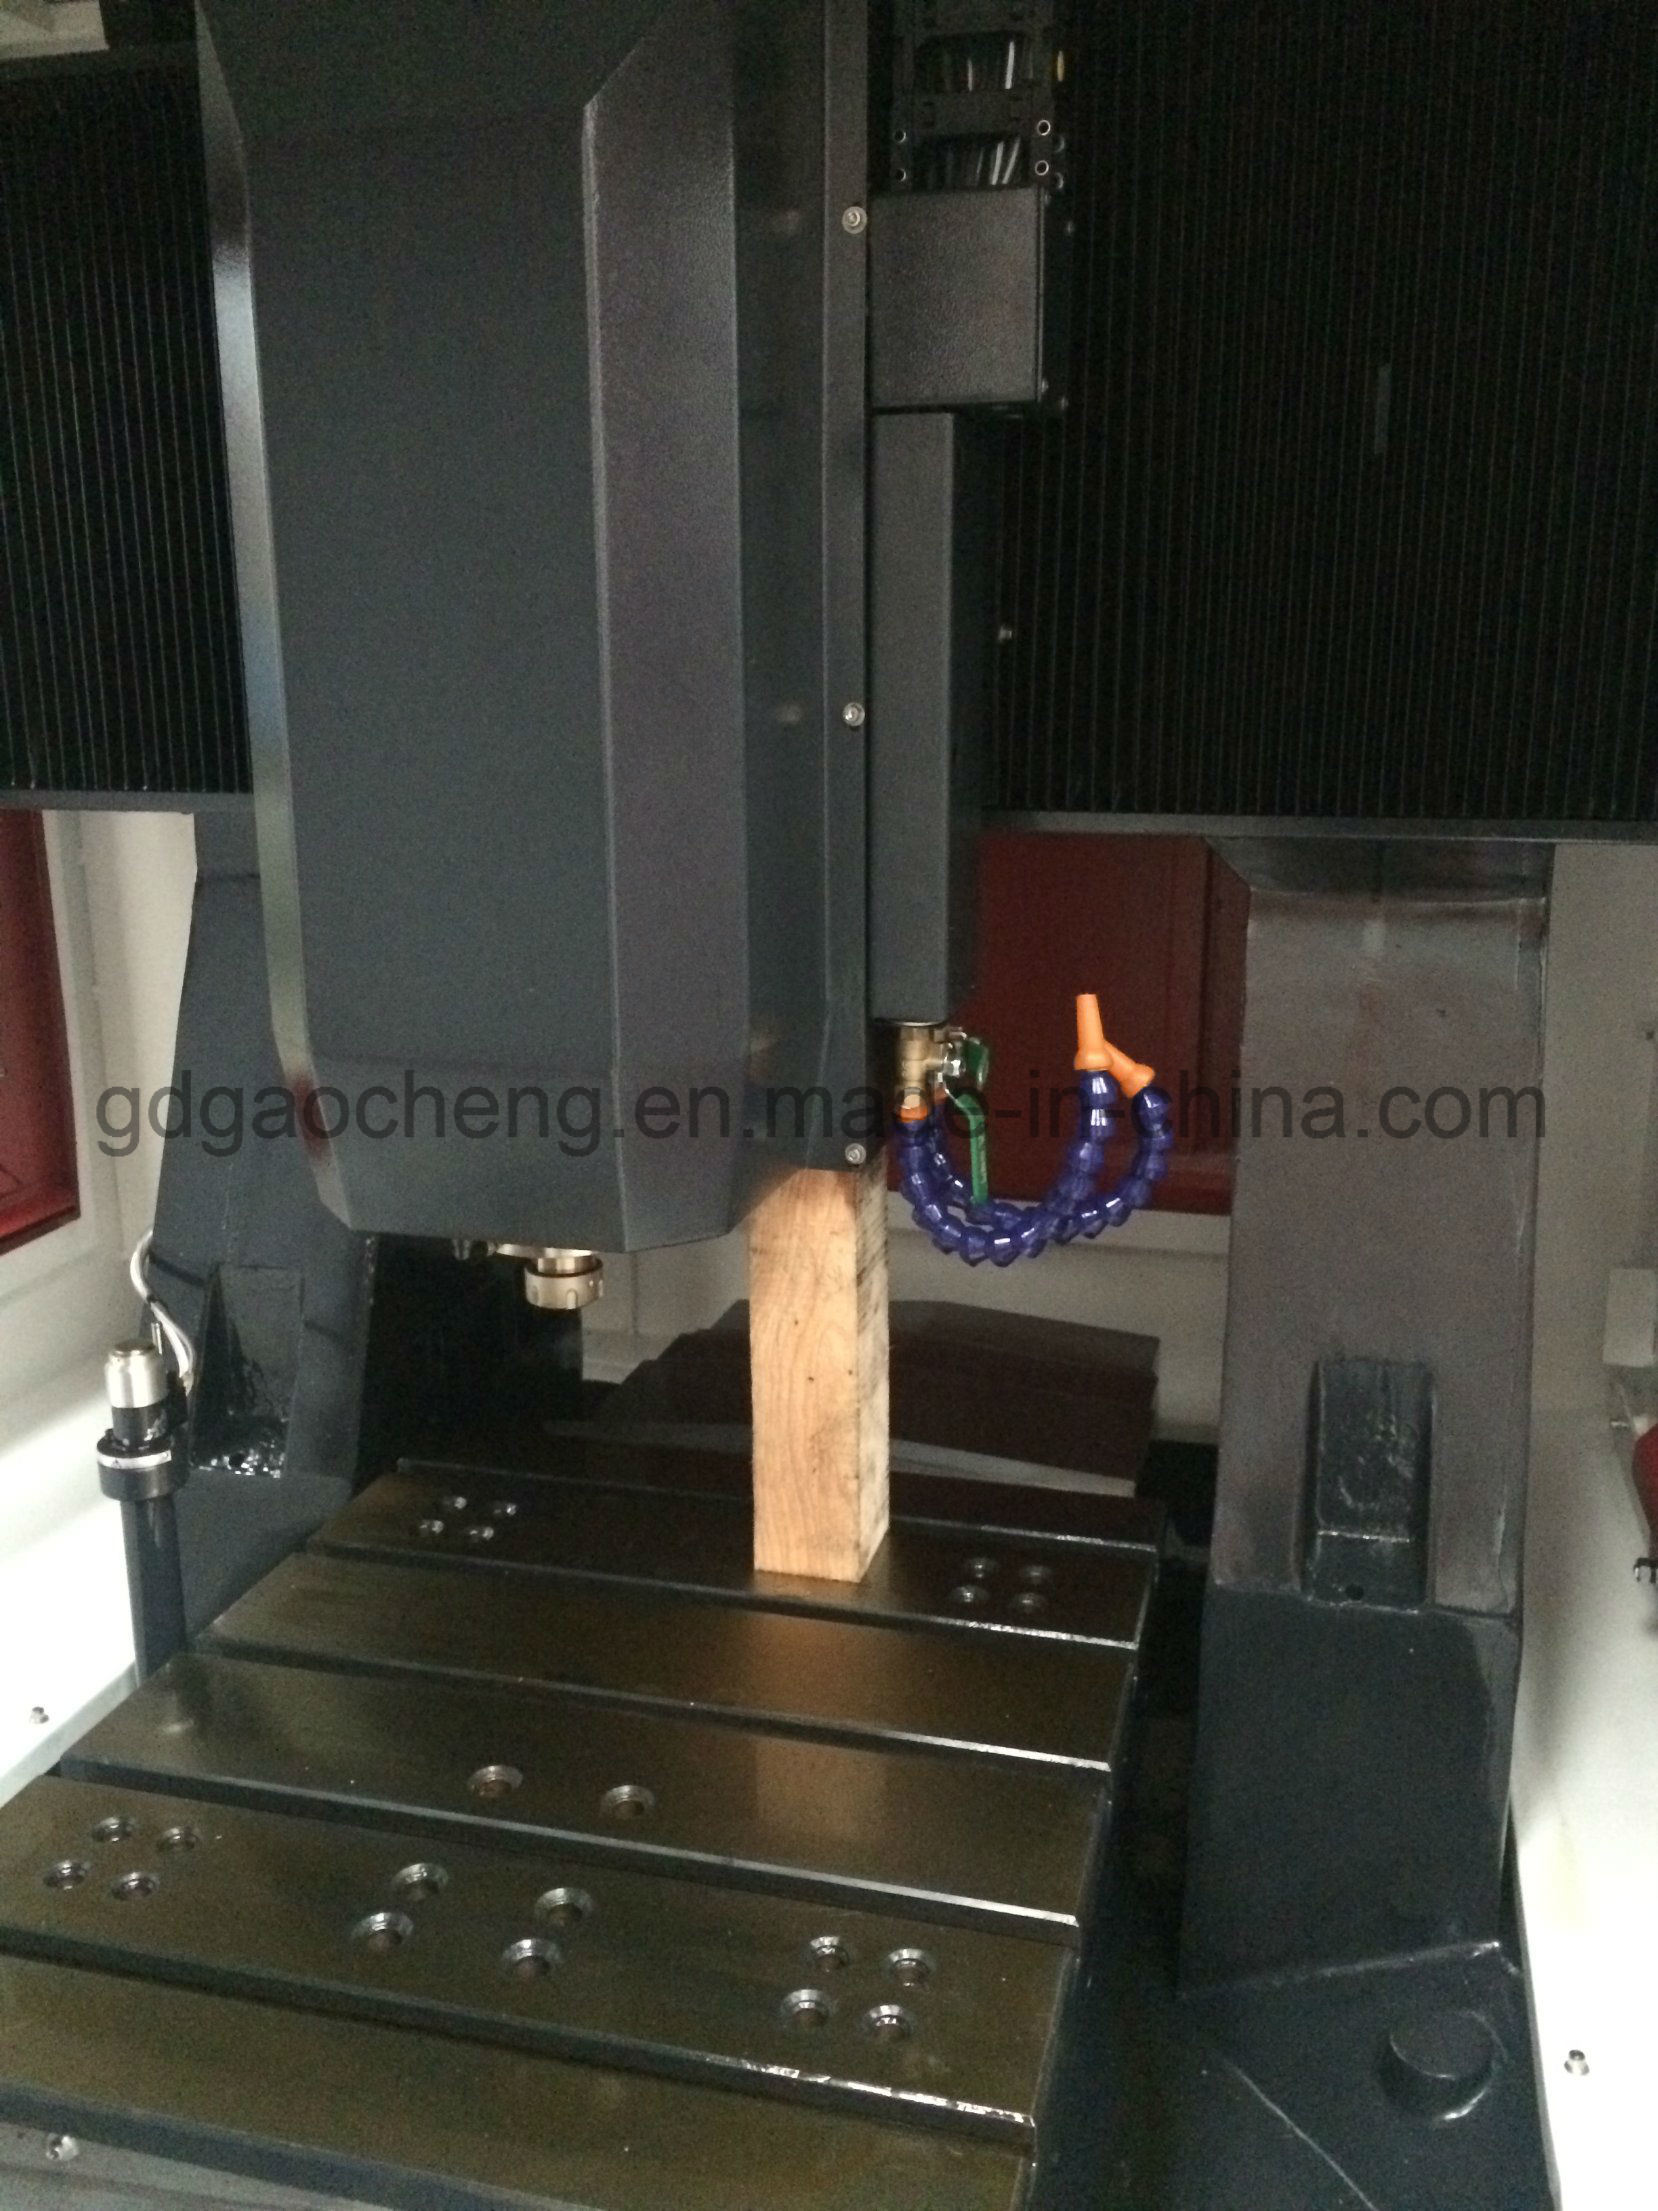 500 X 600mm High Speed CNC Milling & Engraving Machine GS-E650